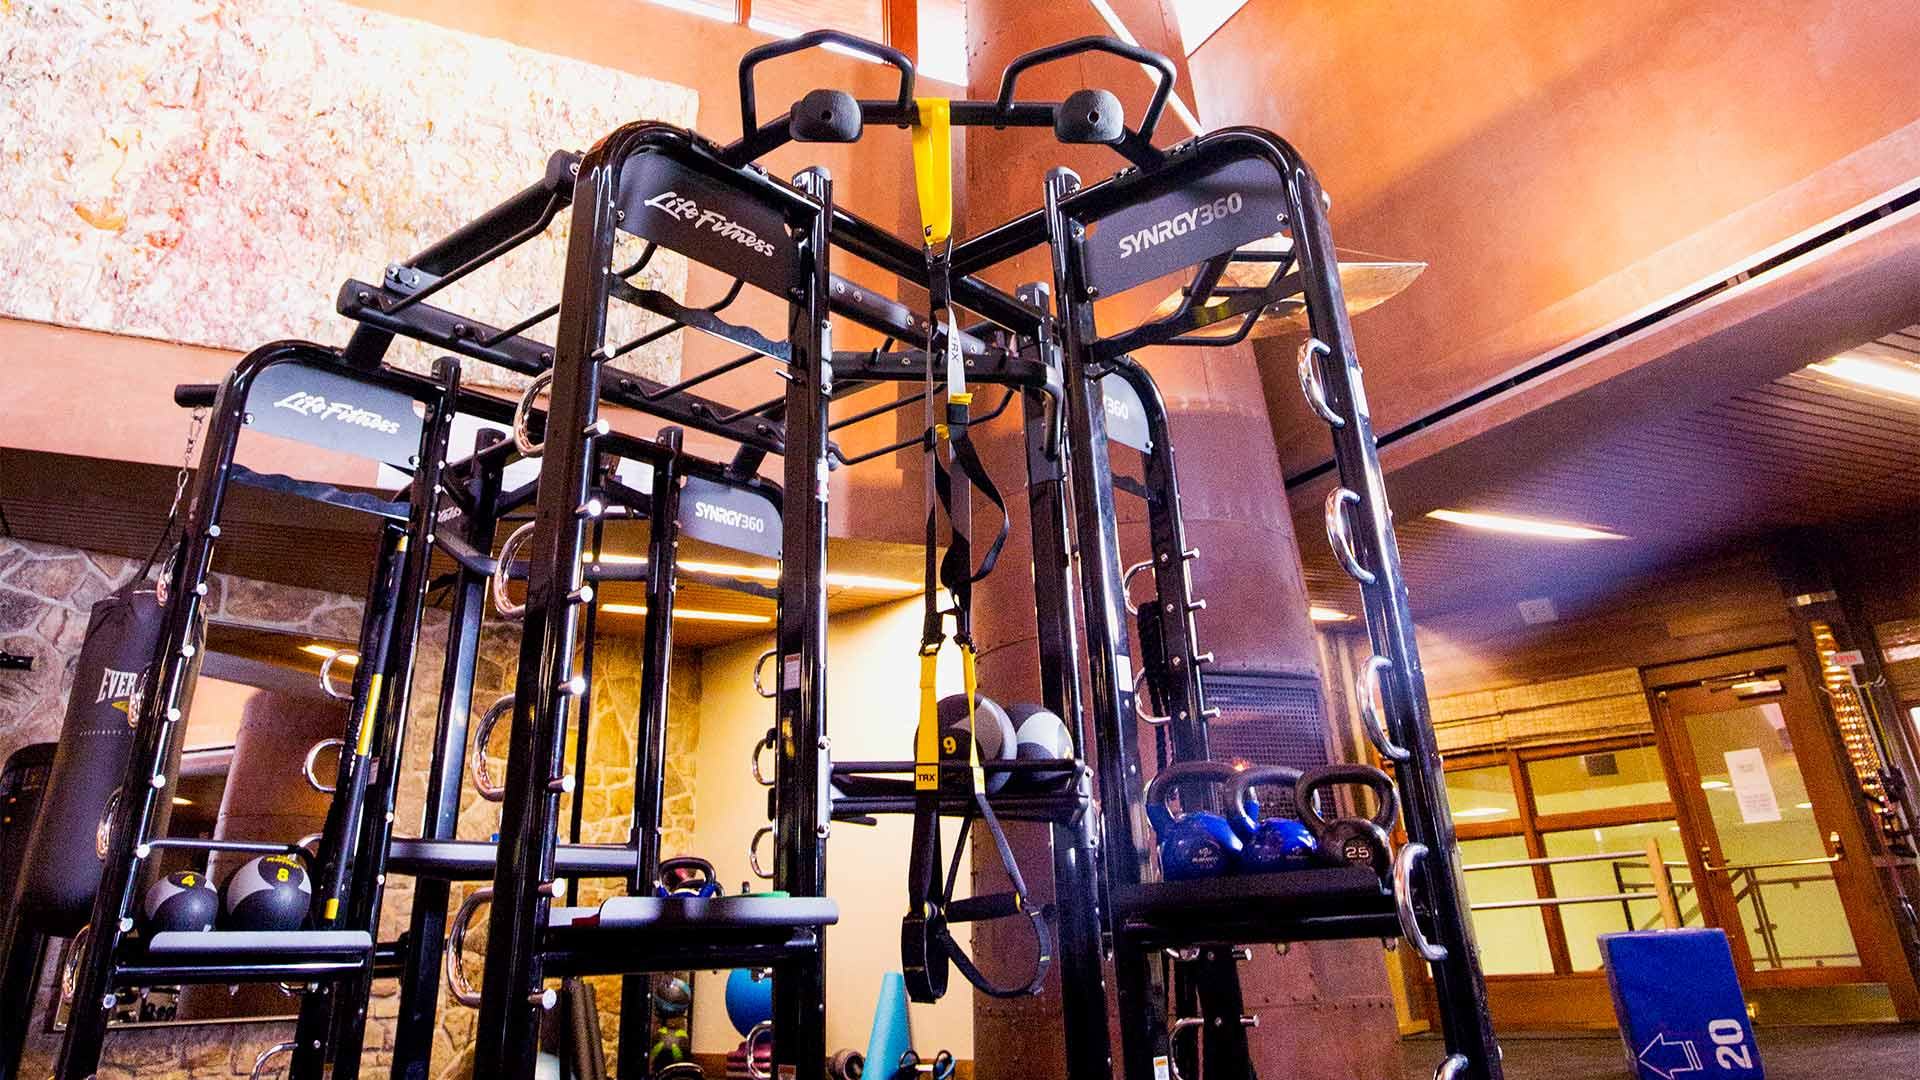 a detail shot of the high-end weight machines present at the fitness center